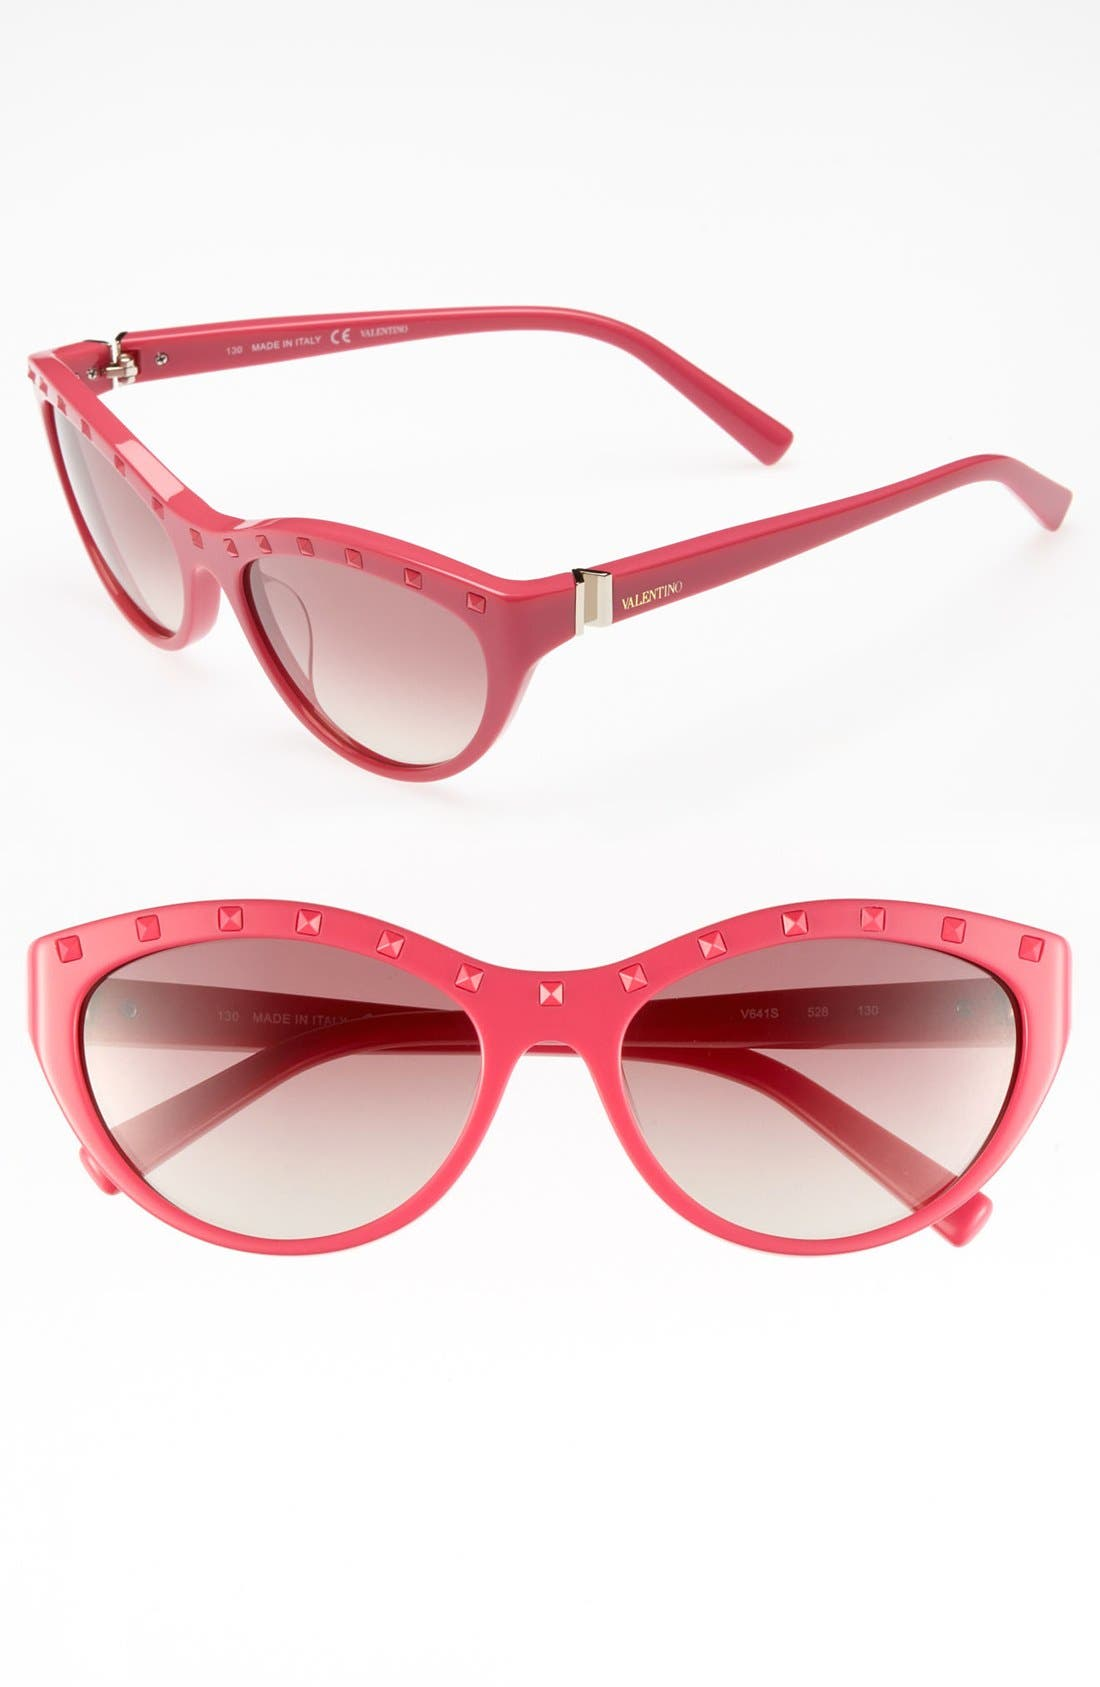 Main Image - Valentino 'Rockstud' 54mm Cat Eye Sunglasses